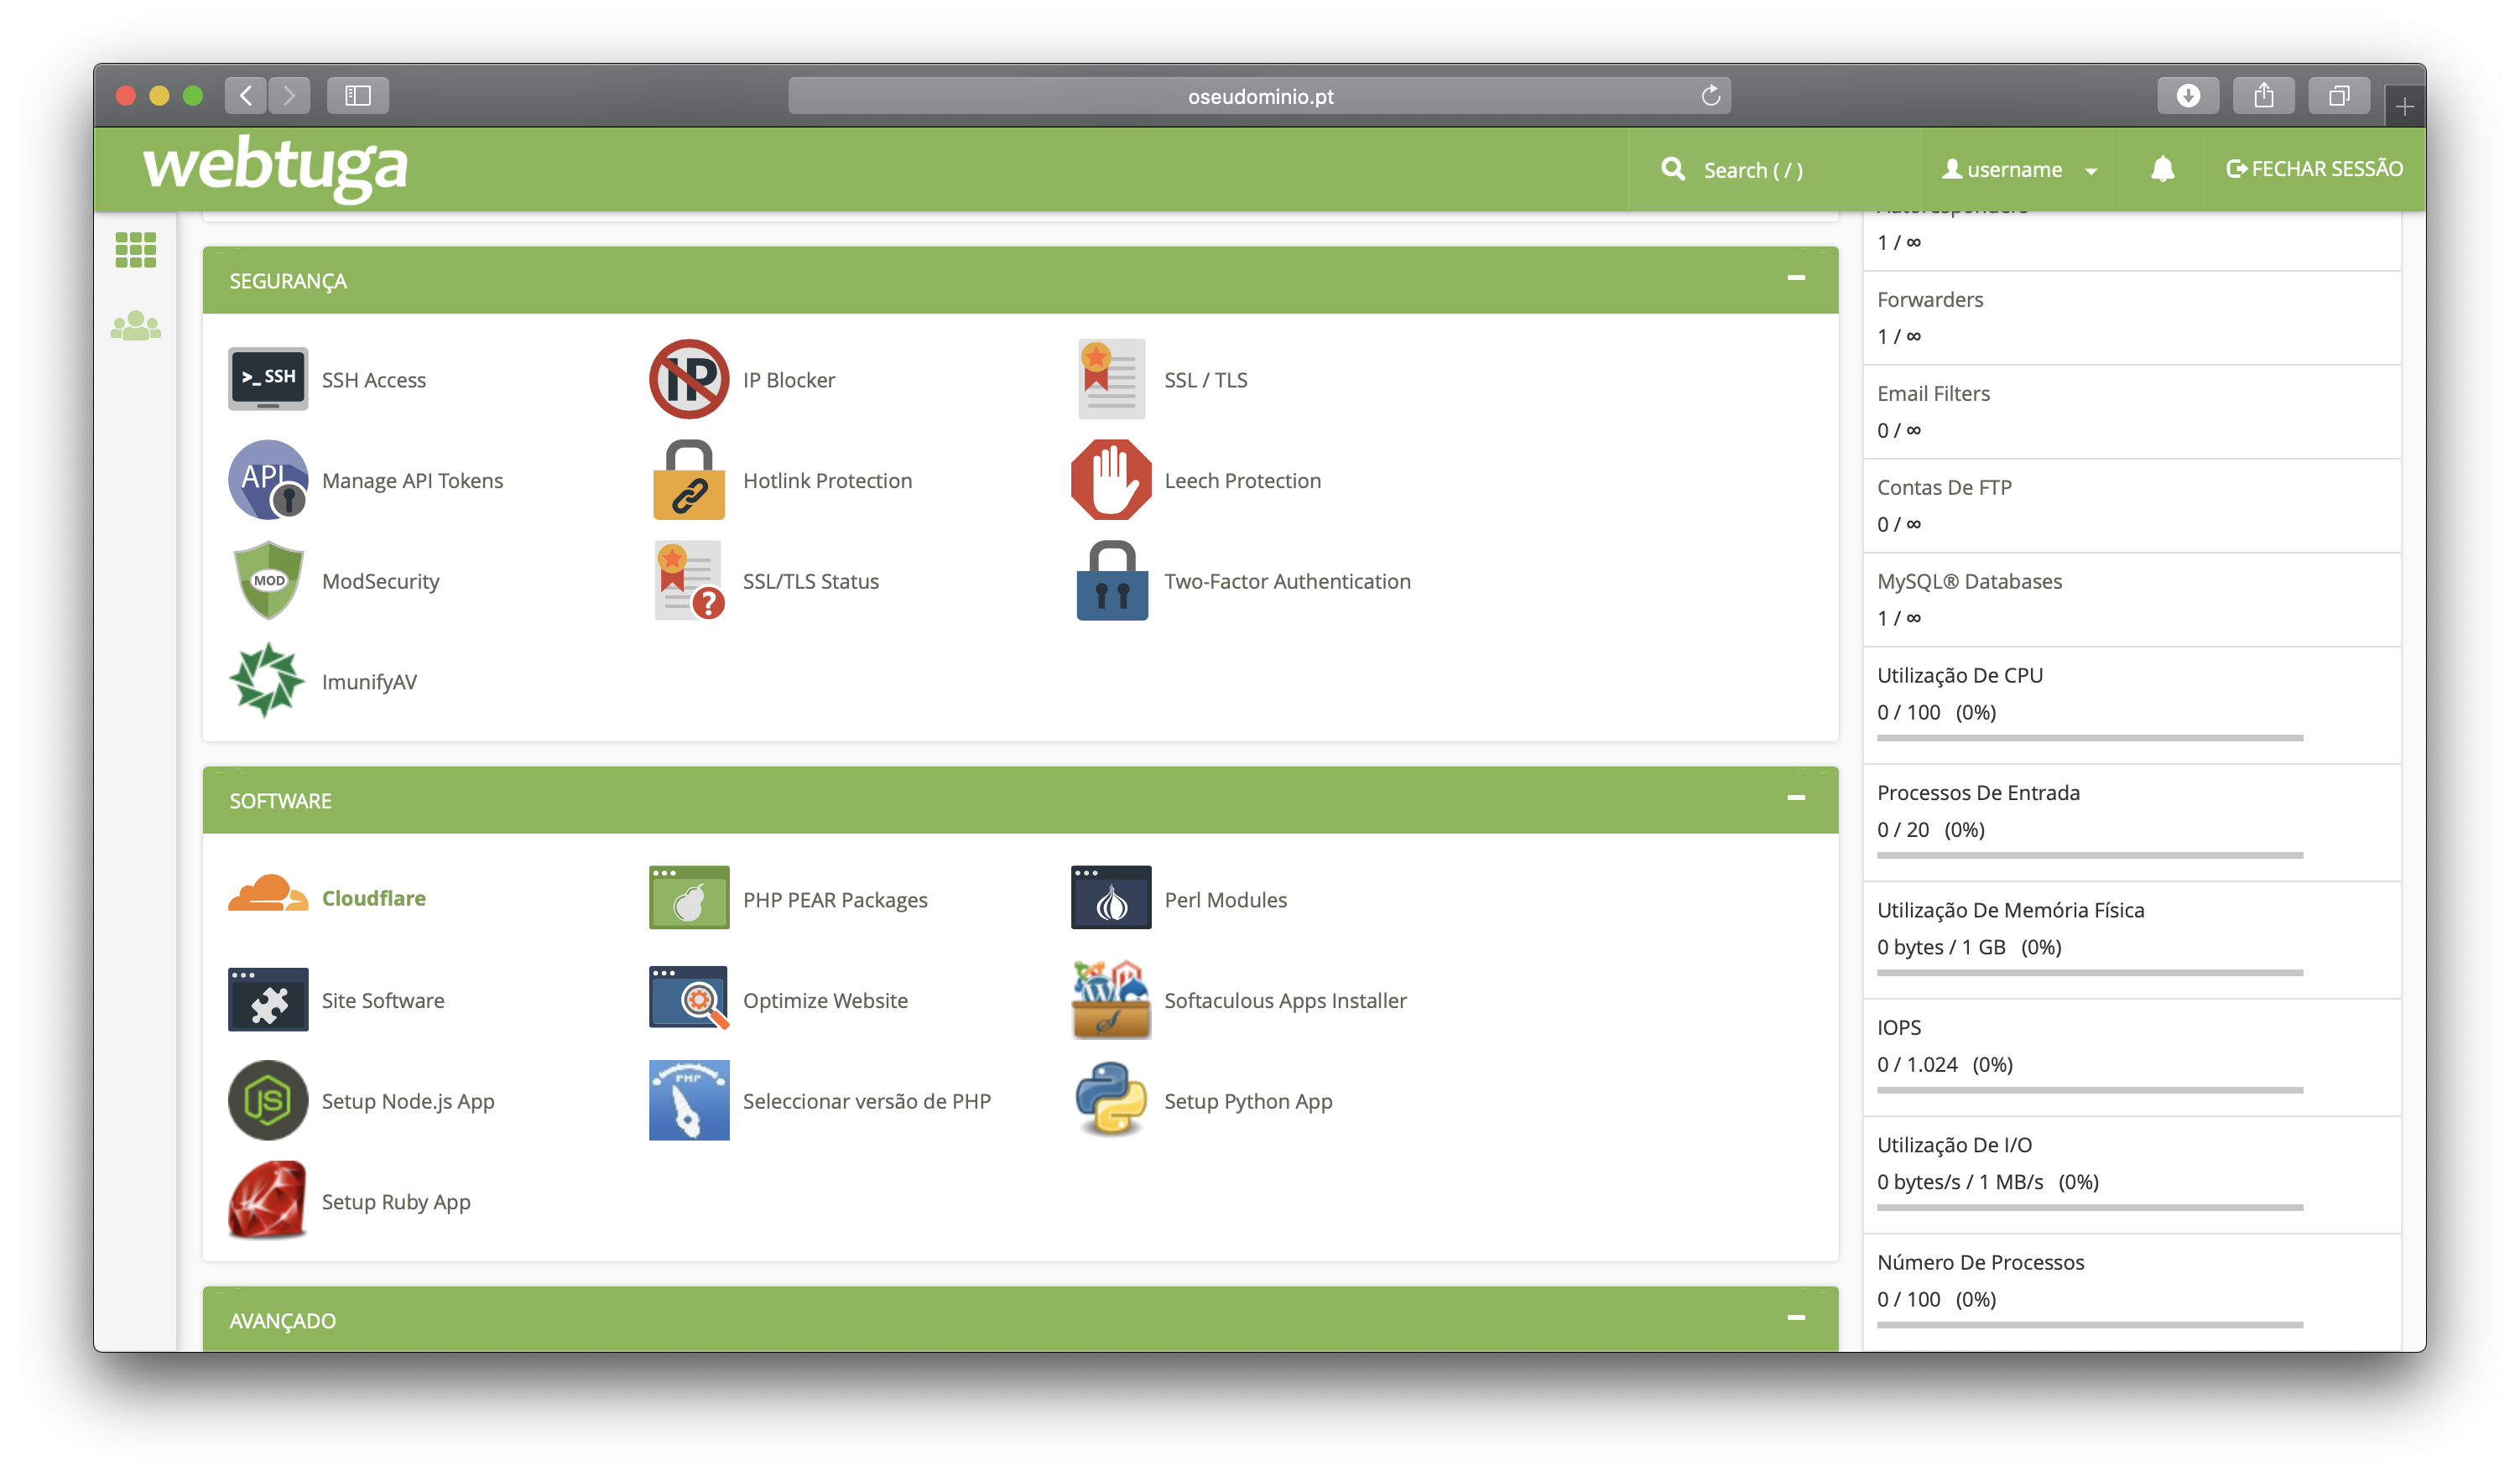 cloudflare-activar-cpanel-1.png